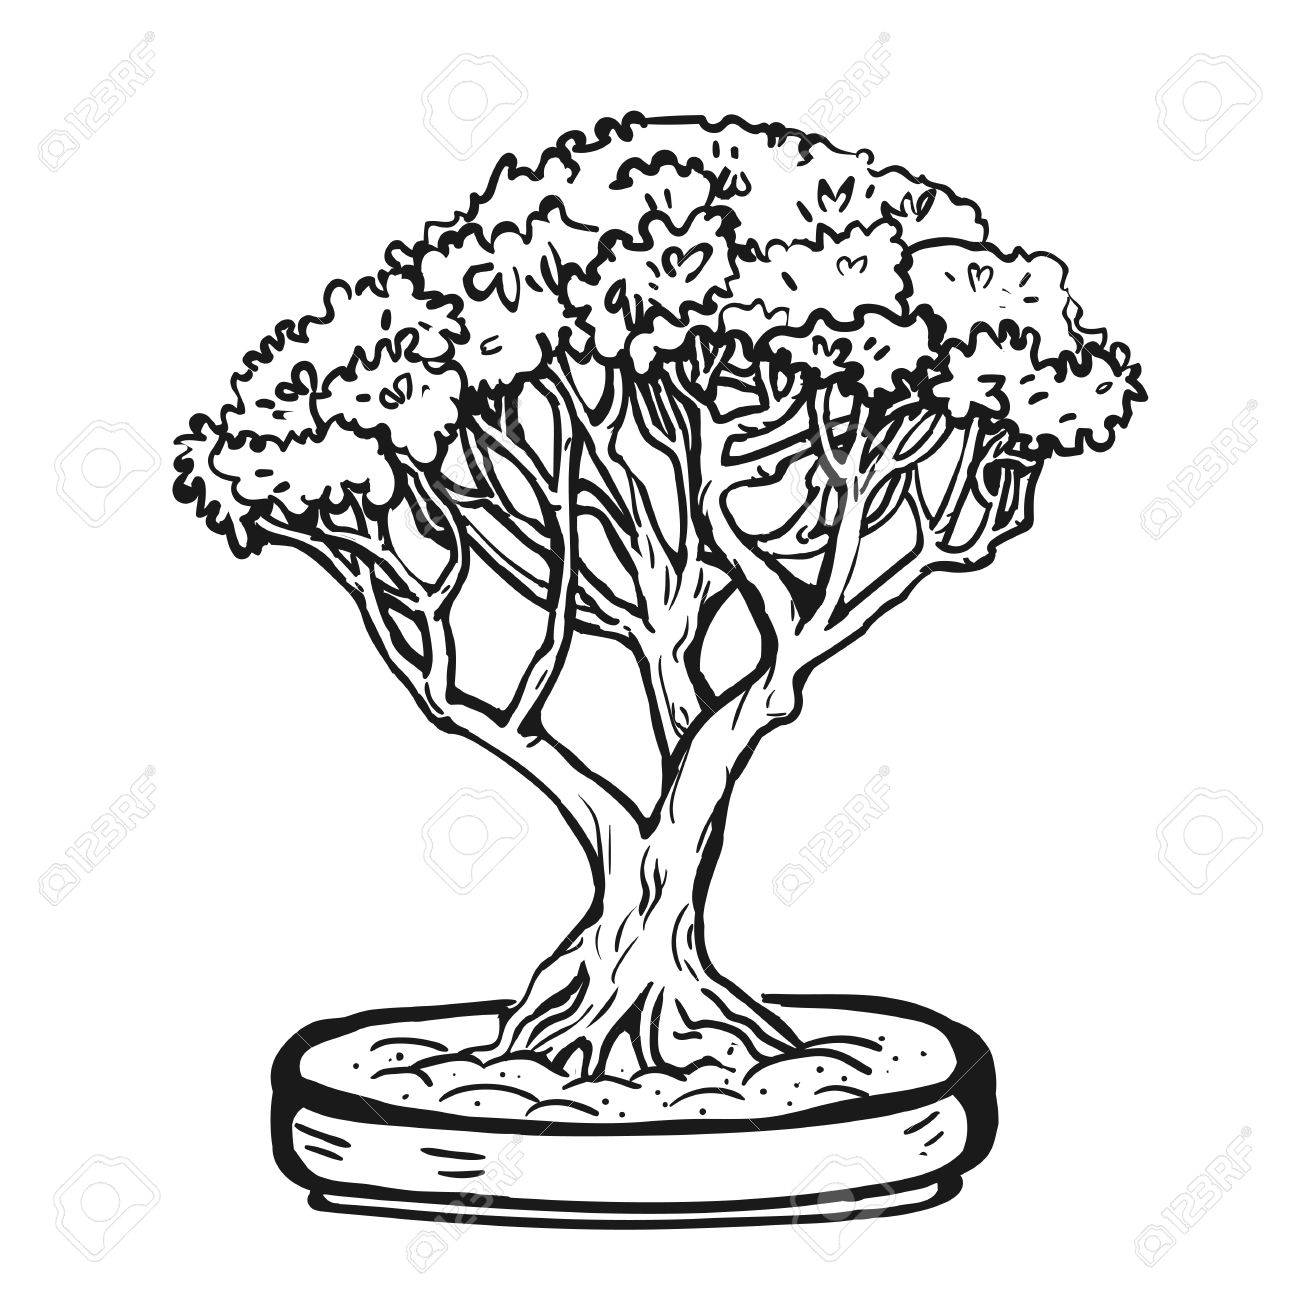 Handdrawn decorative asian bonsai tree in the pot with multitrunk. - 64303012